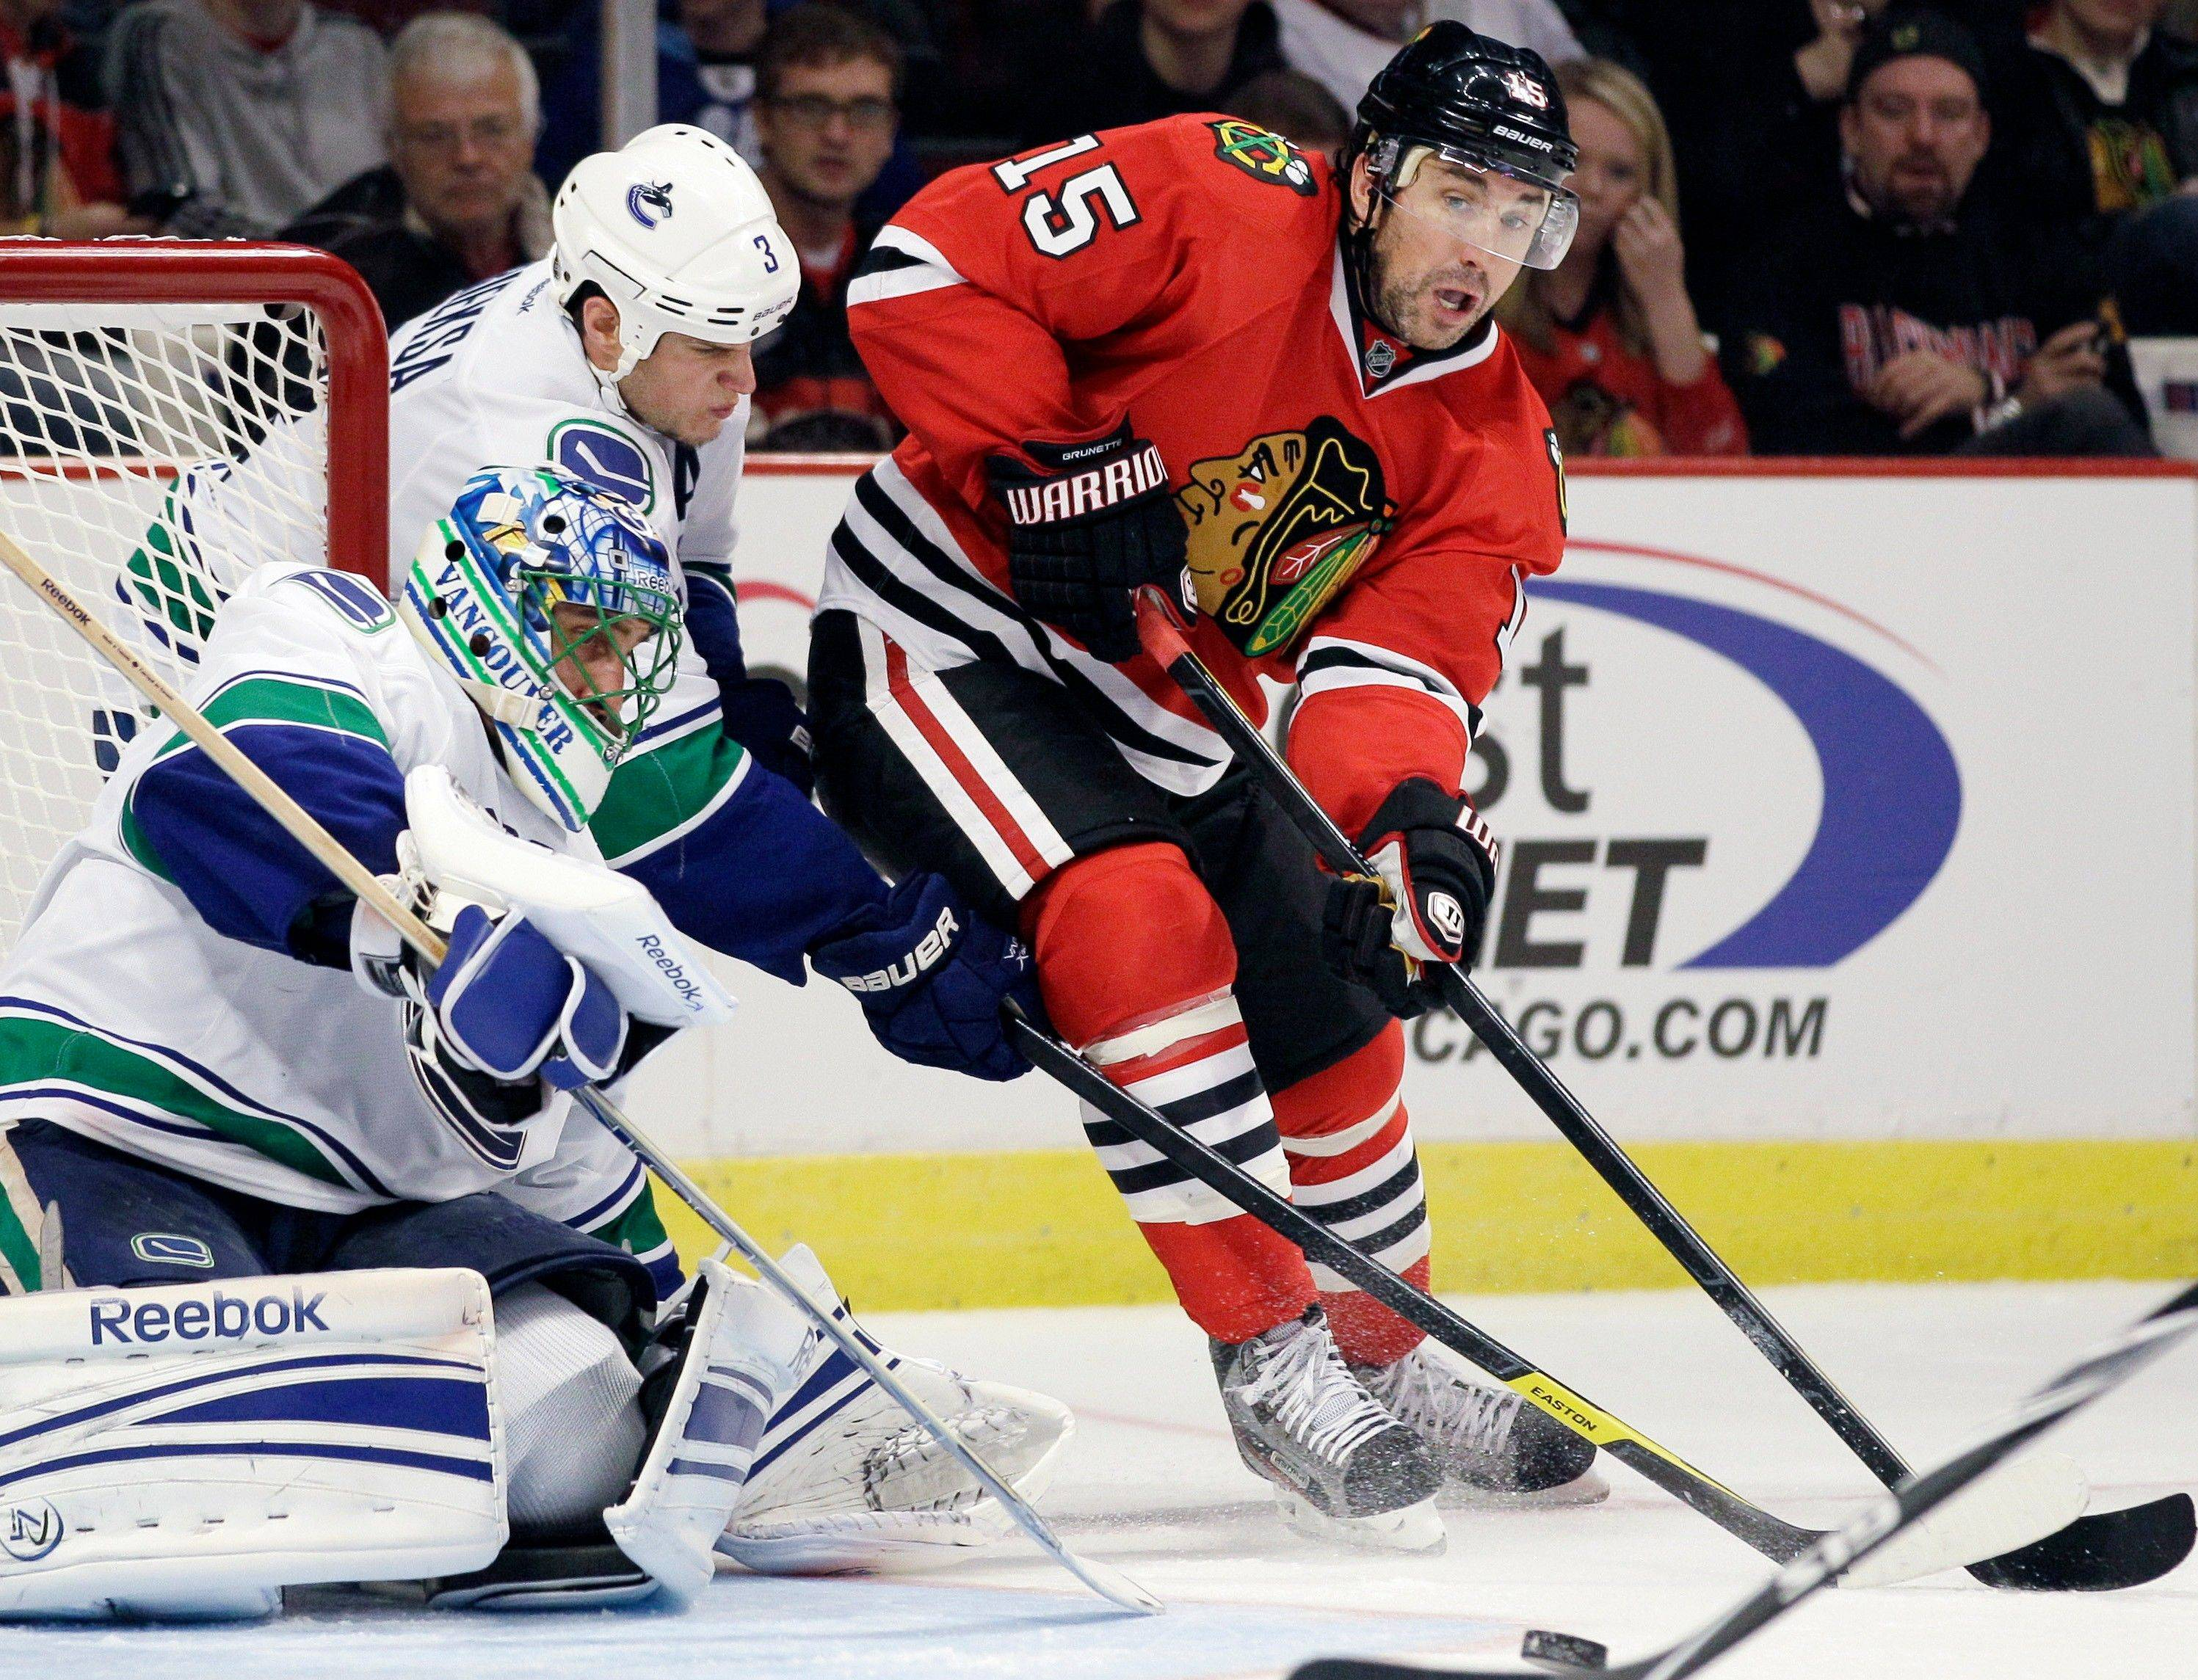 Andrew Brunette (15) will be expected to provide more traffic in front of the net on the power play from Hawks coach Joel Quenneville.